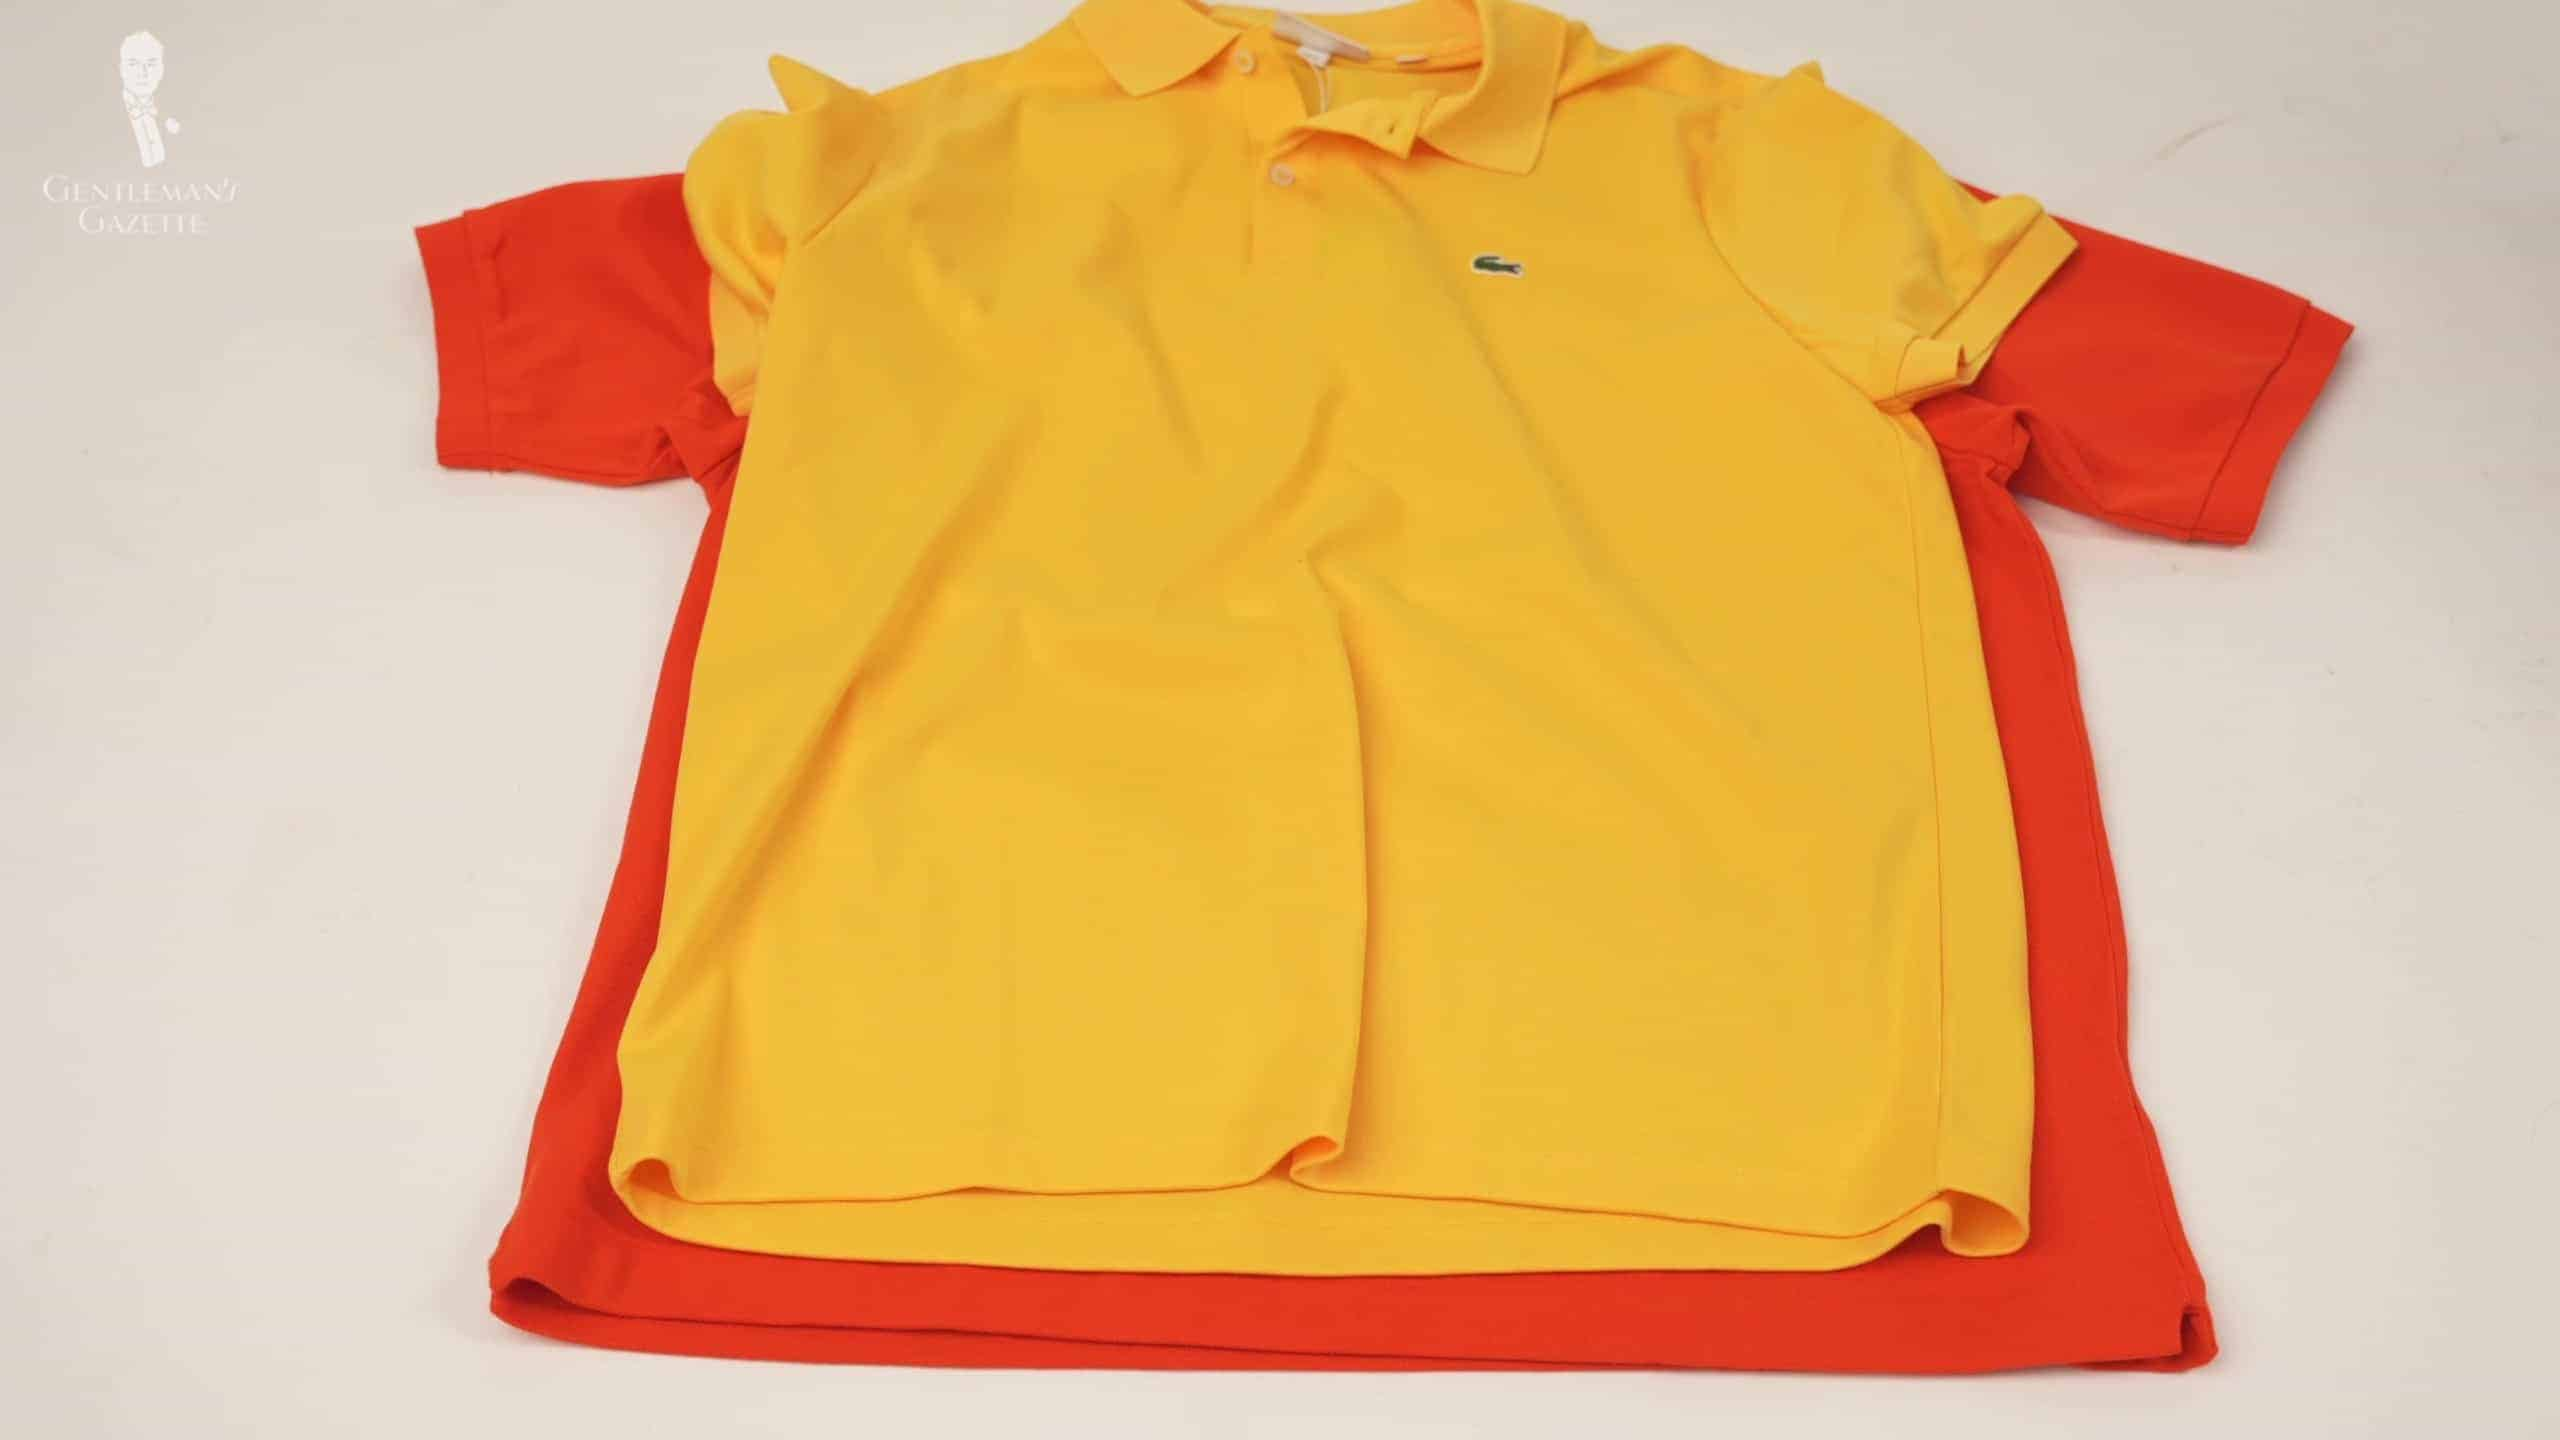 Lacoste Polo Shirt: Is It Worth It? (In-Depth Review)